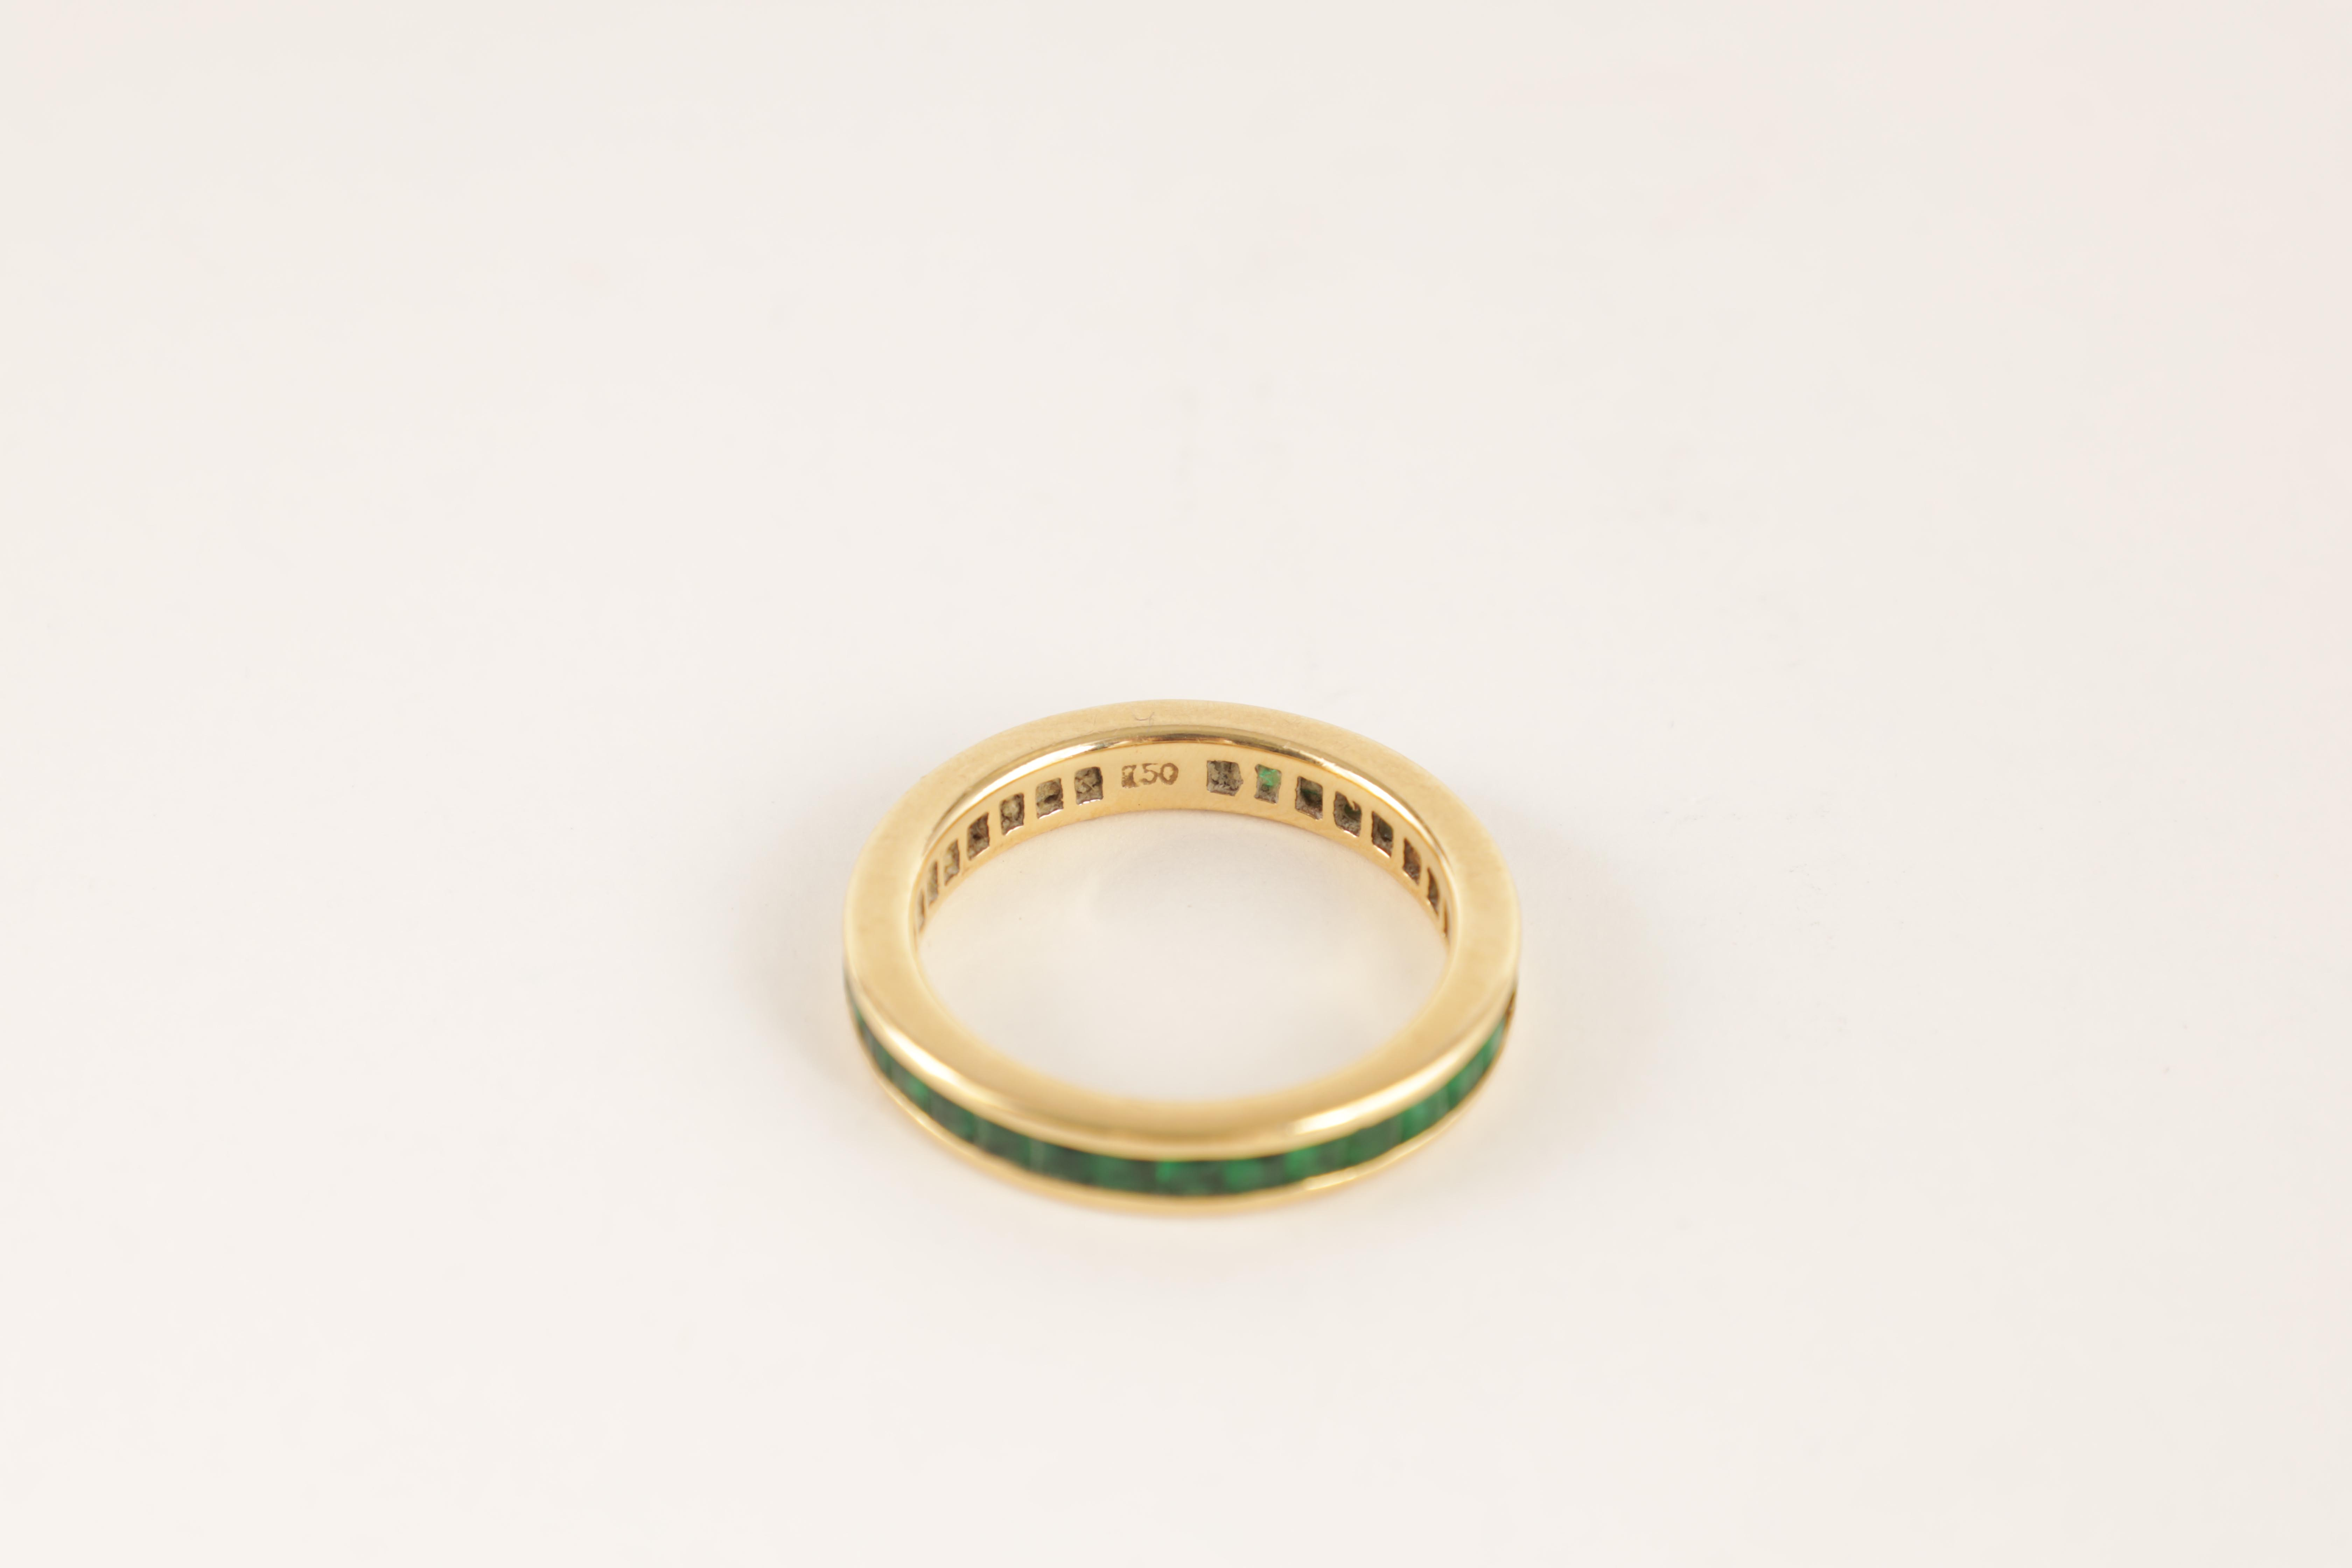 AN 18CT GOLD AND EMERALD ETERNITY RING set all round with square-cut stones, app. weight 4.5g - Image 2 of 5